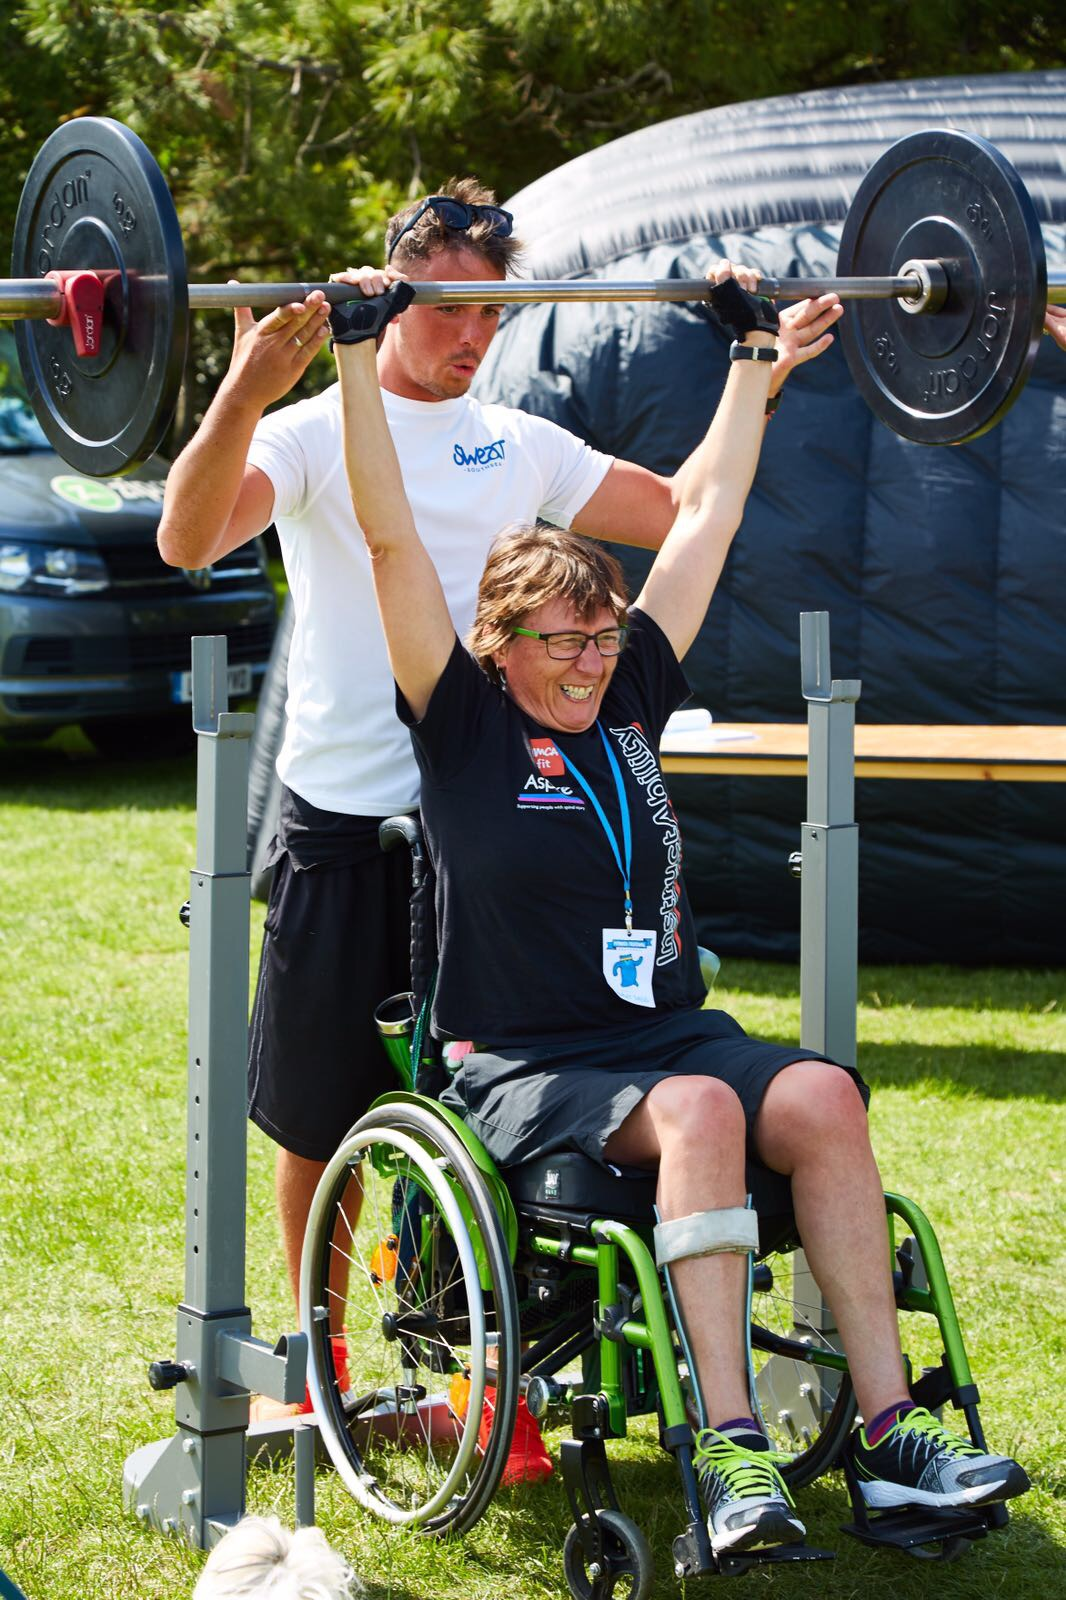 Helping   inspirational People prove anything is possible. Just what the fitness festival is all about.